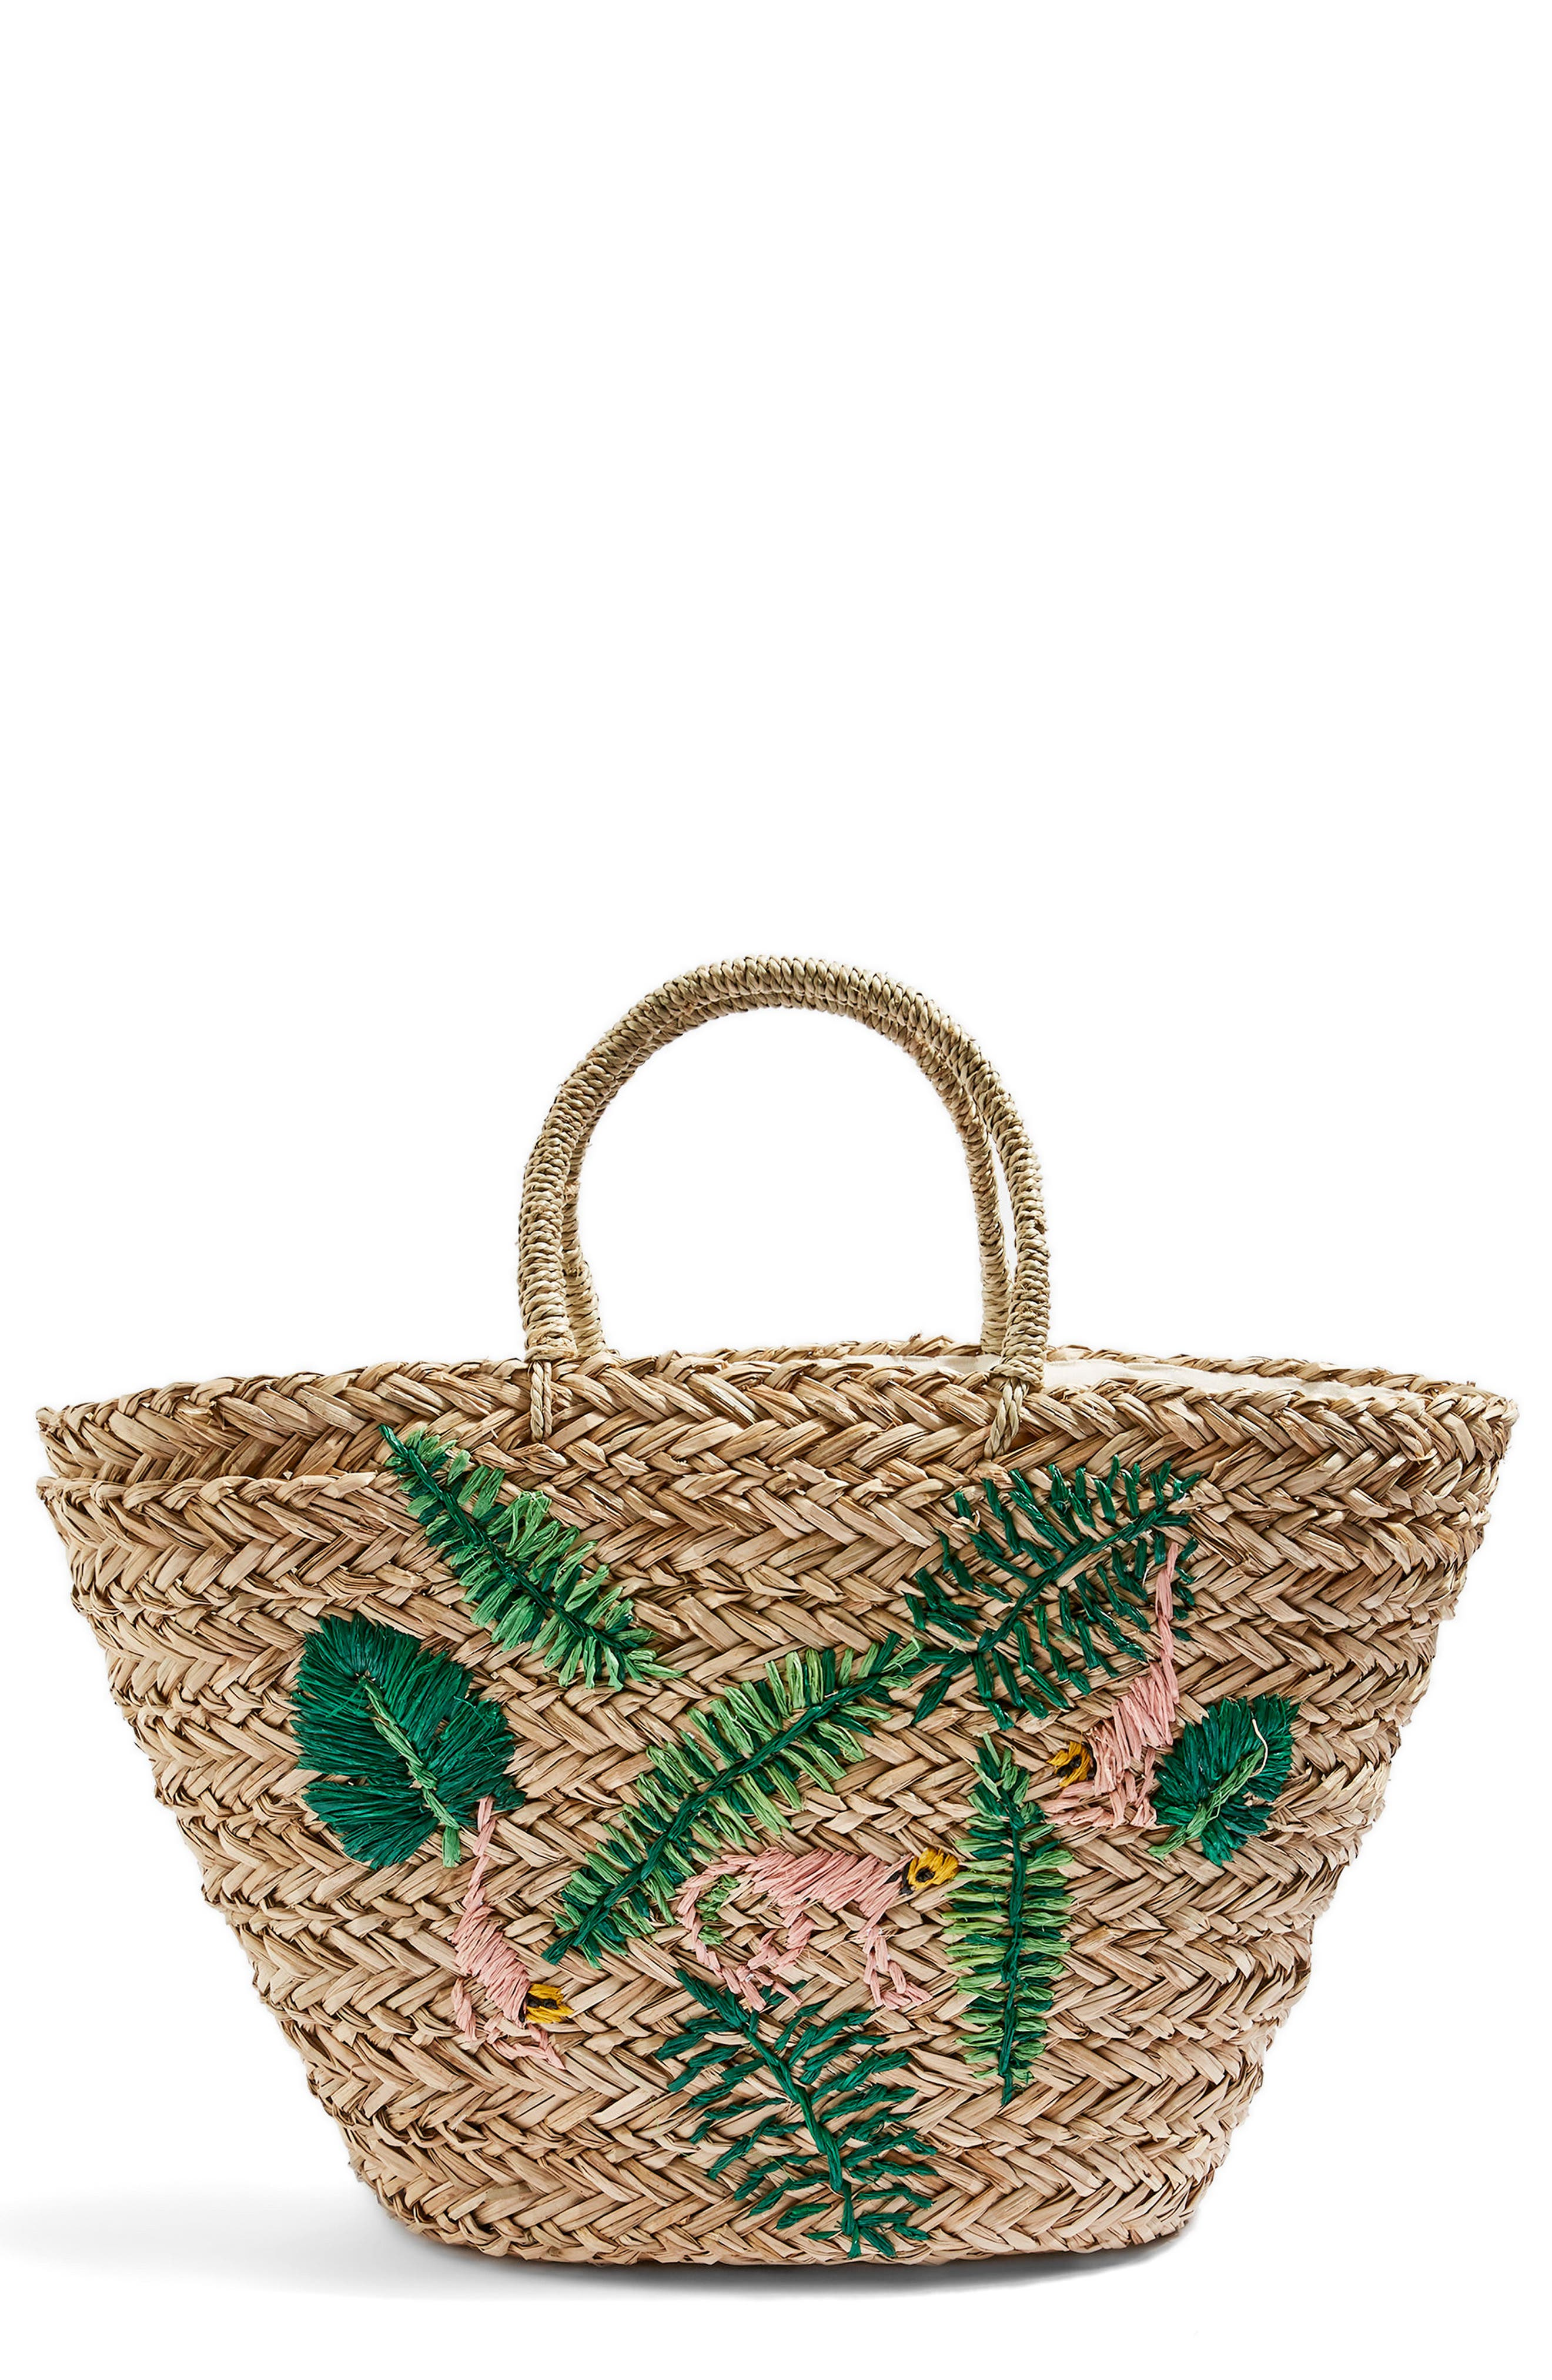 Barrio Monkey Embroidered Straw Tote Bag,                             Main thumbnail 1, color,                             Nude Multi